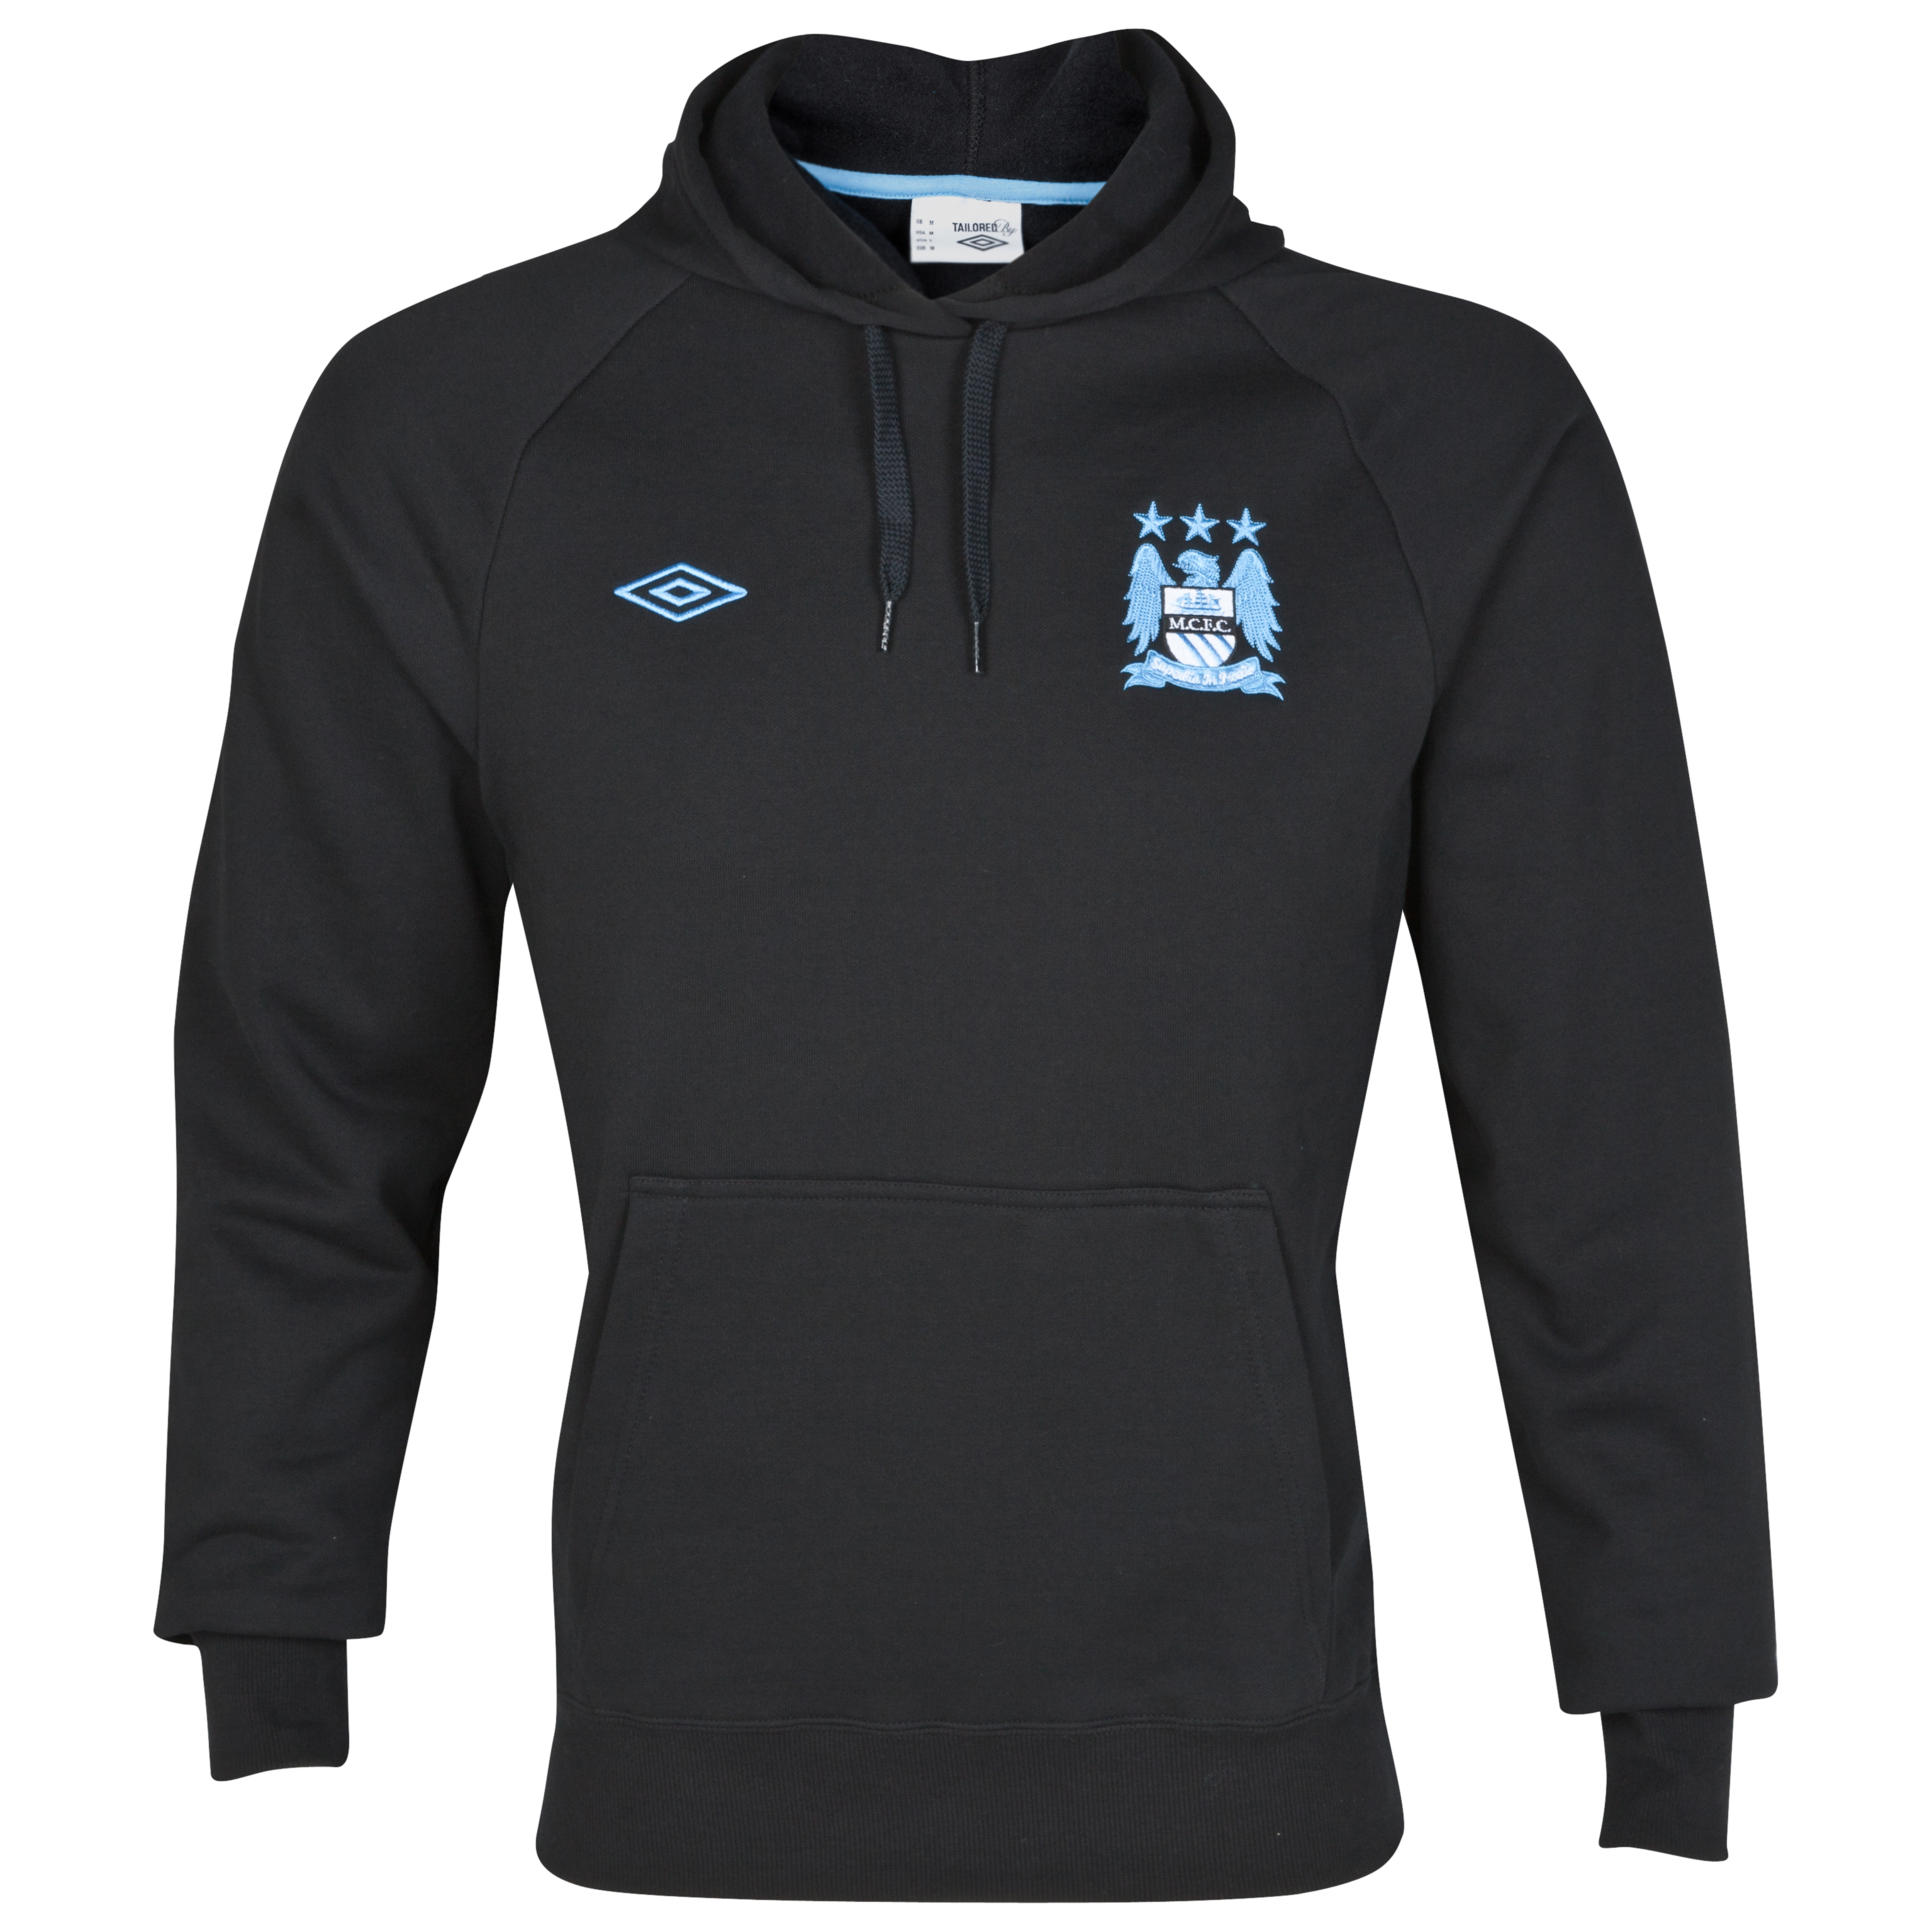 Manchester City WTC Hoody - Black